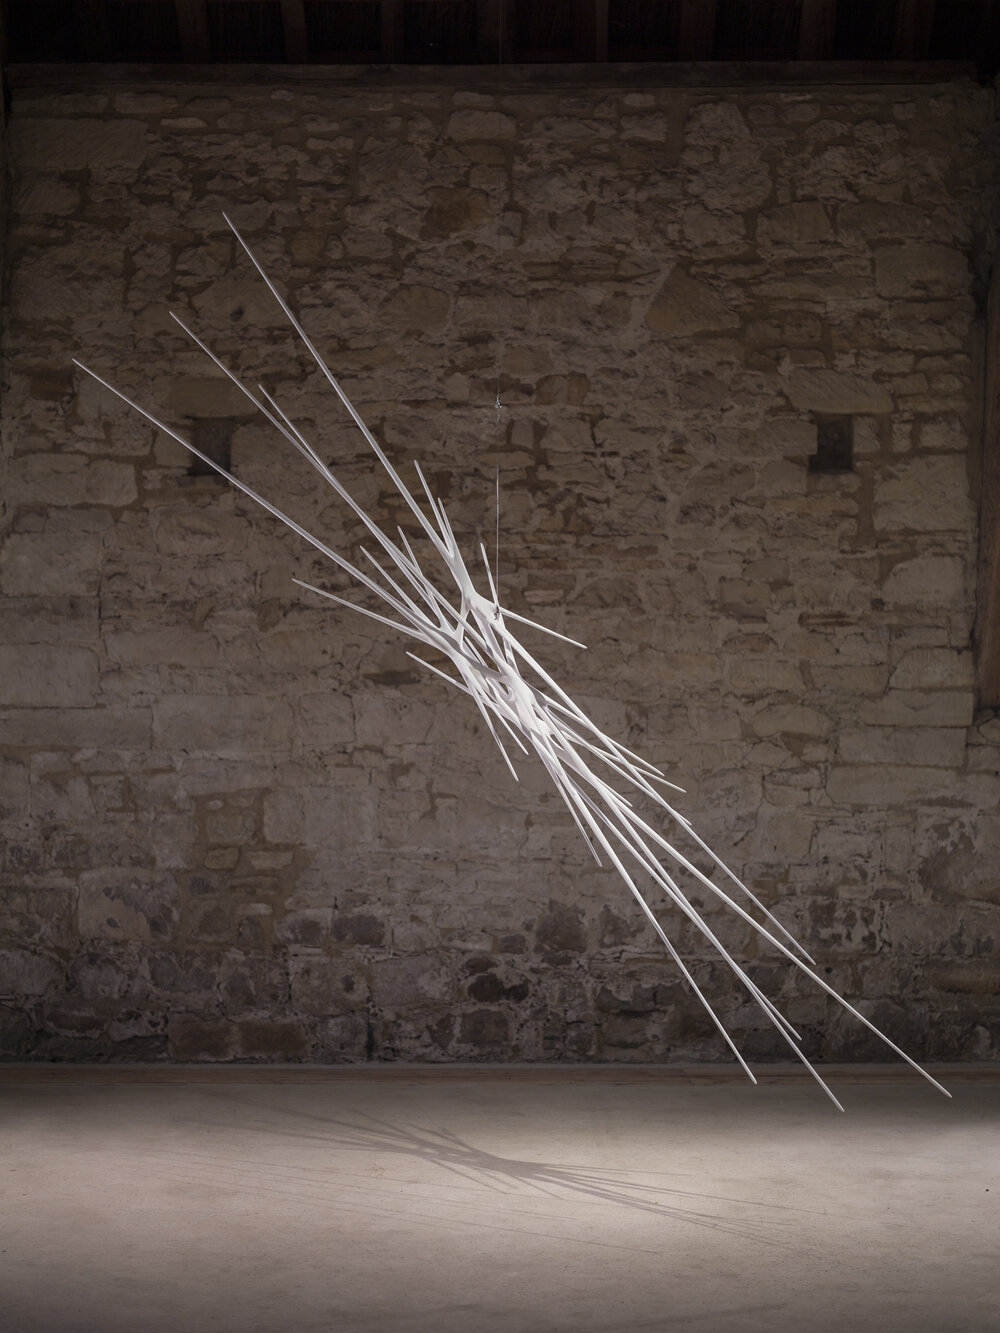 Spiked Sculpture by Christopher Kurtz 5